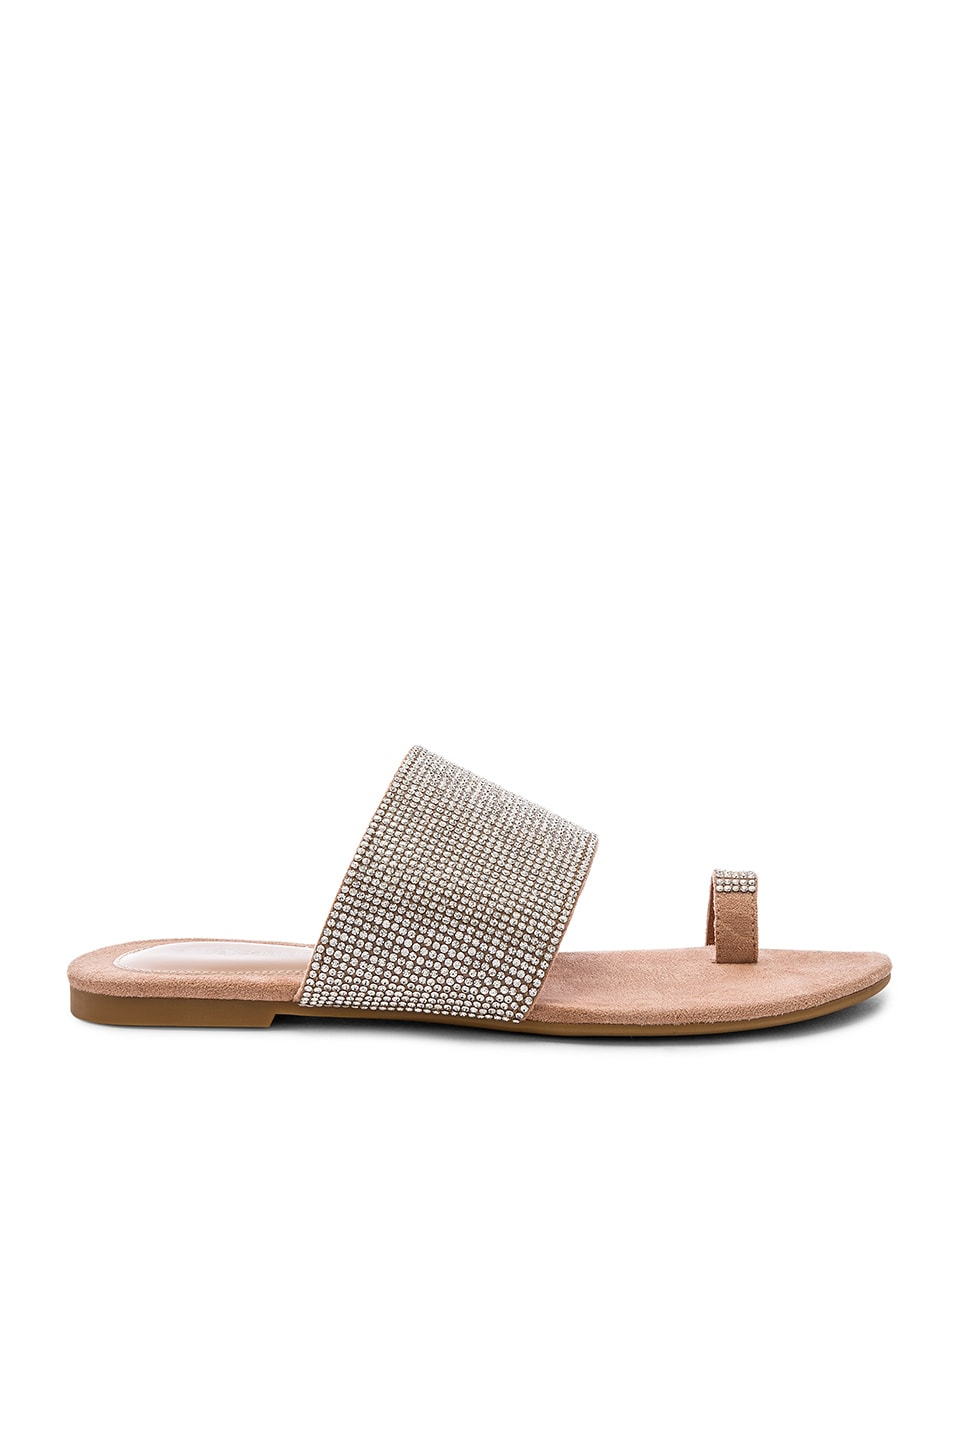 Jeffrey Campbell Jema Sandal in Nude Suede & Champagne